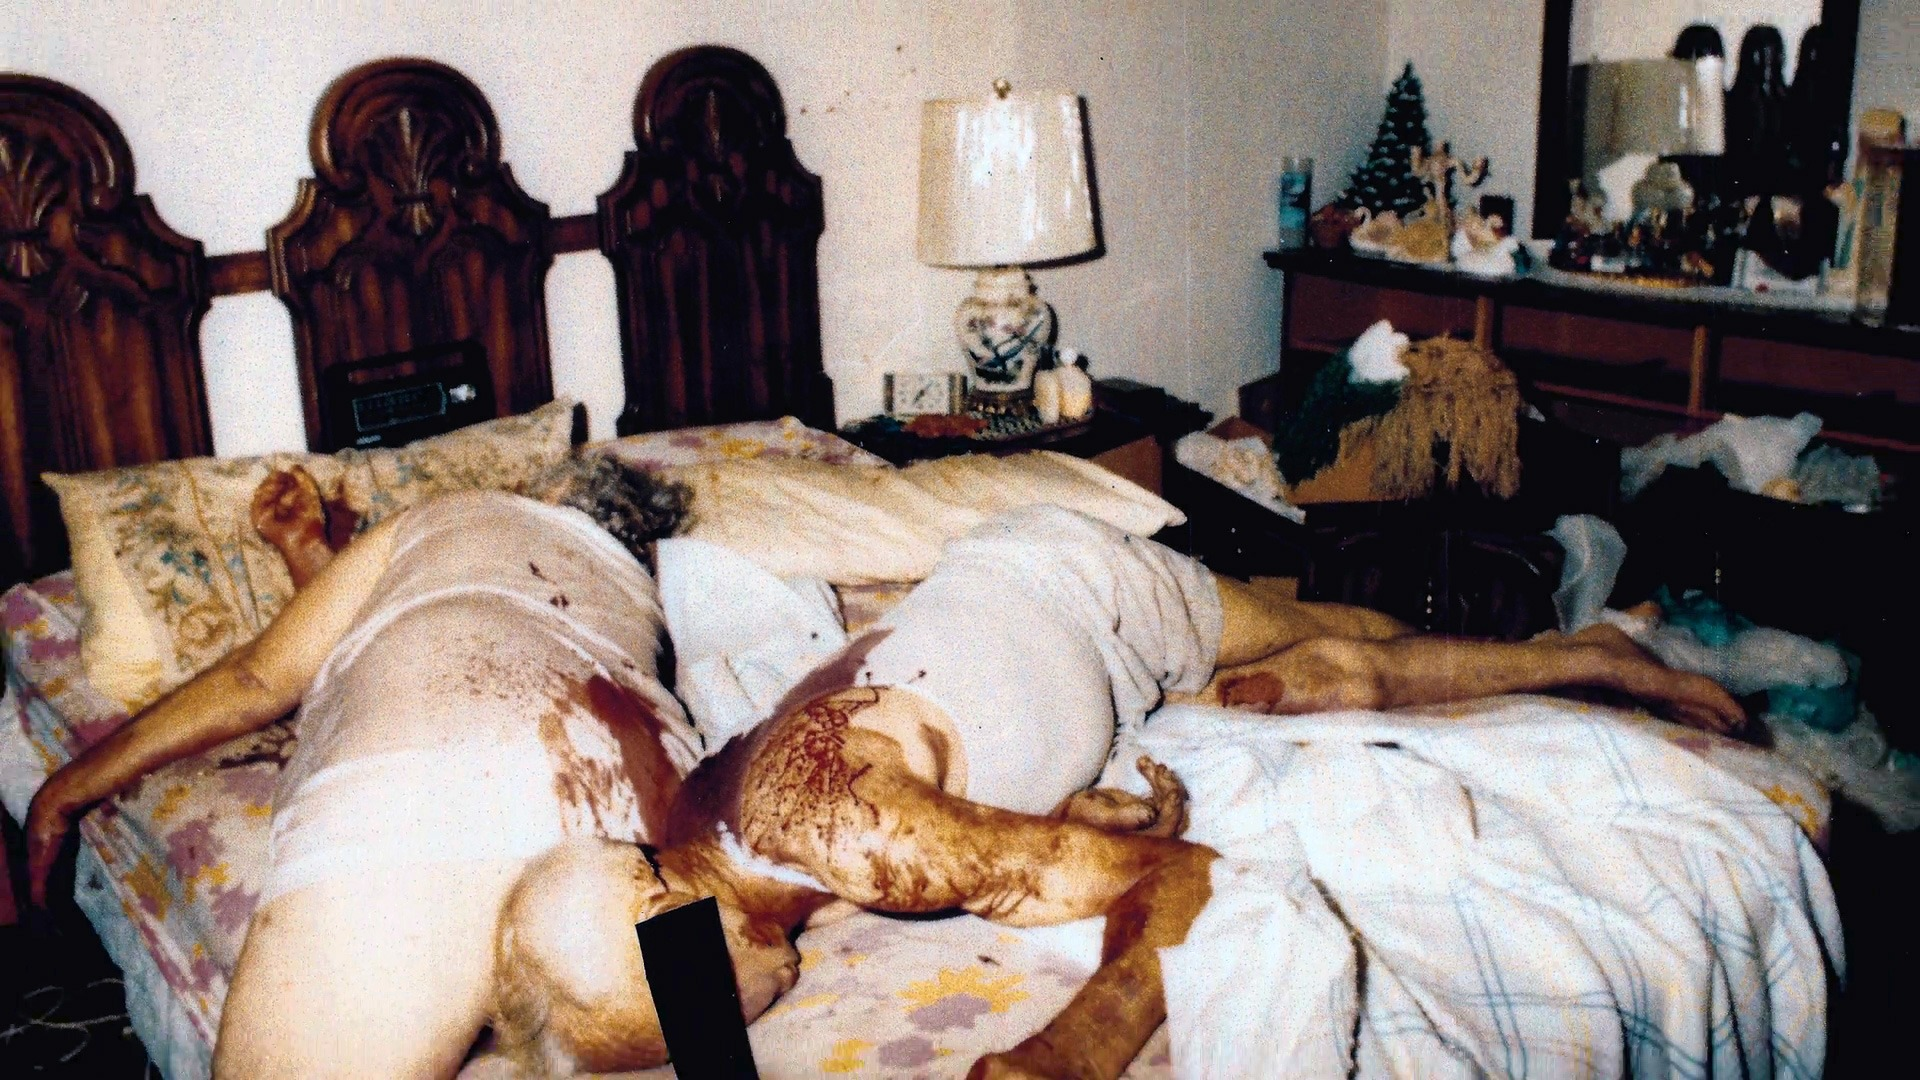 richard-ramirez-crime-scene-5 A GRAPHIC Look Back at Richard Ramirez's Reign of Terror